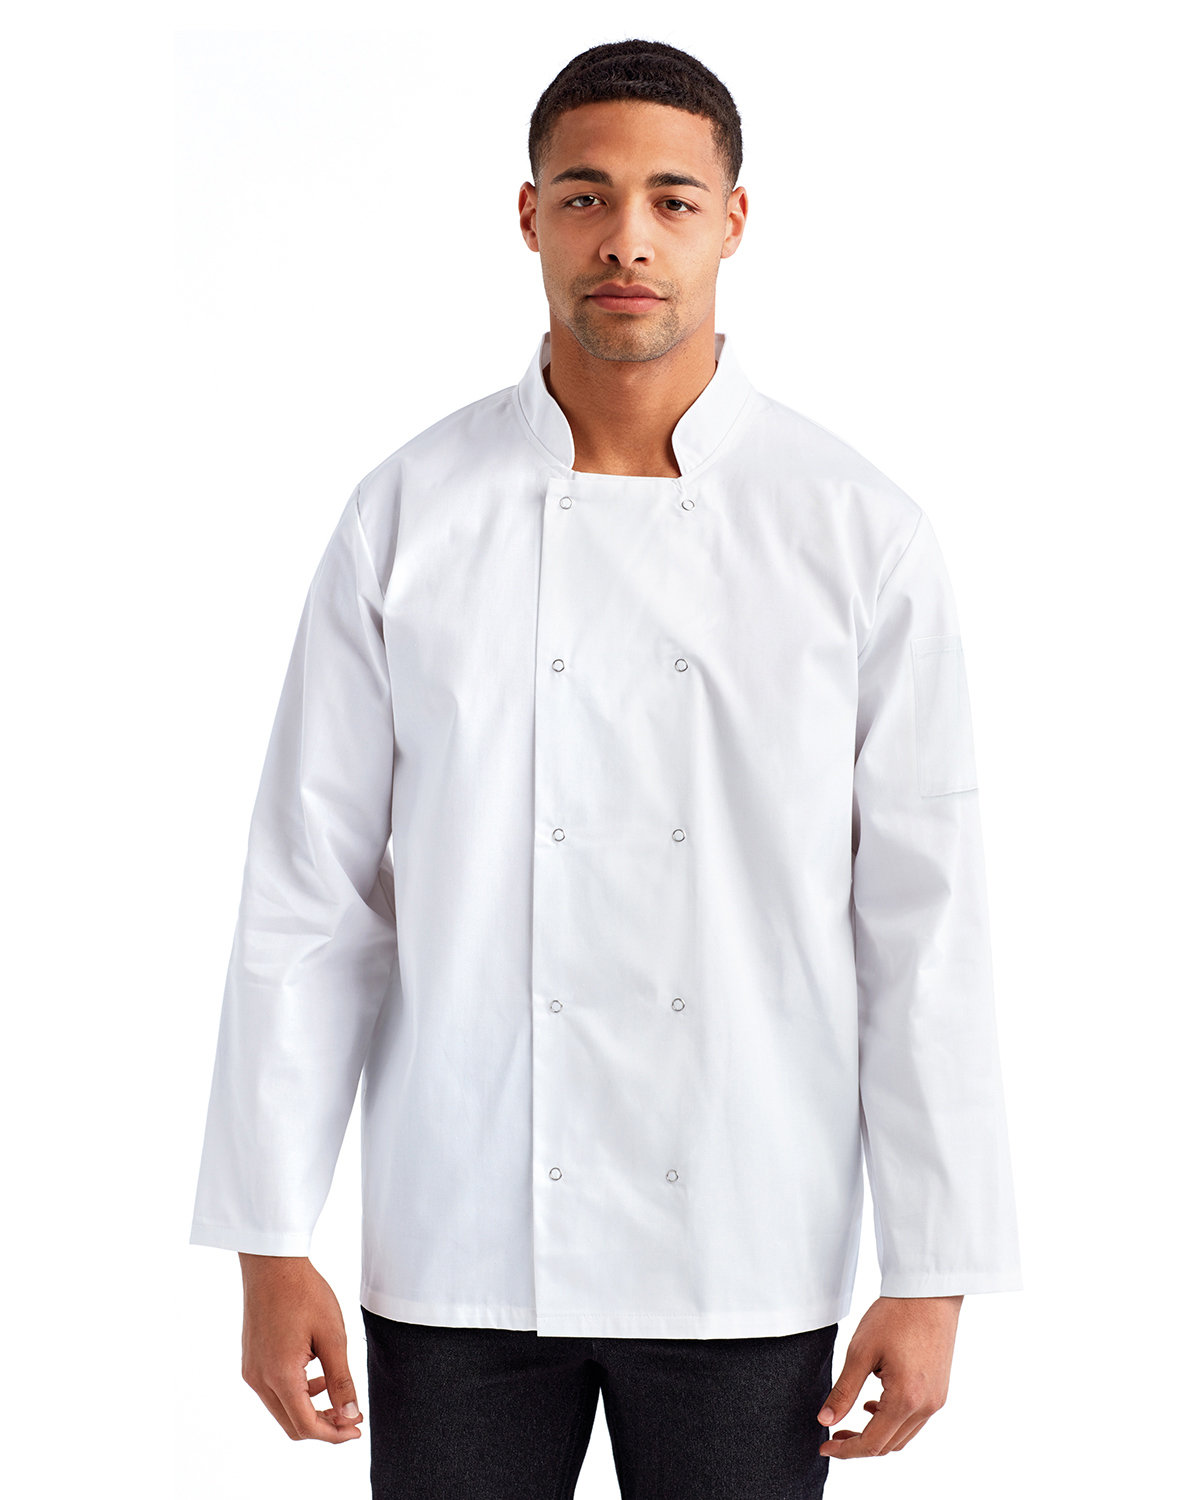 Artisan Collection by Reprime Unisex Studded Front Long-Sleeve Chef's Coat WHITE